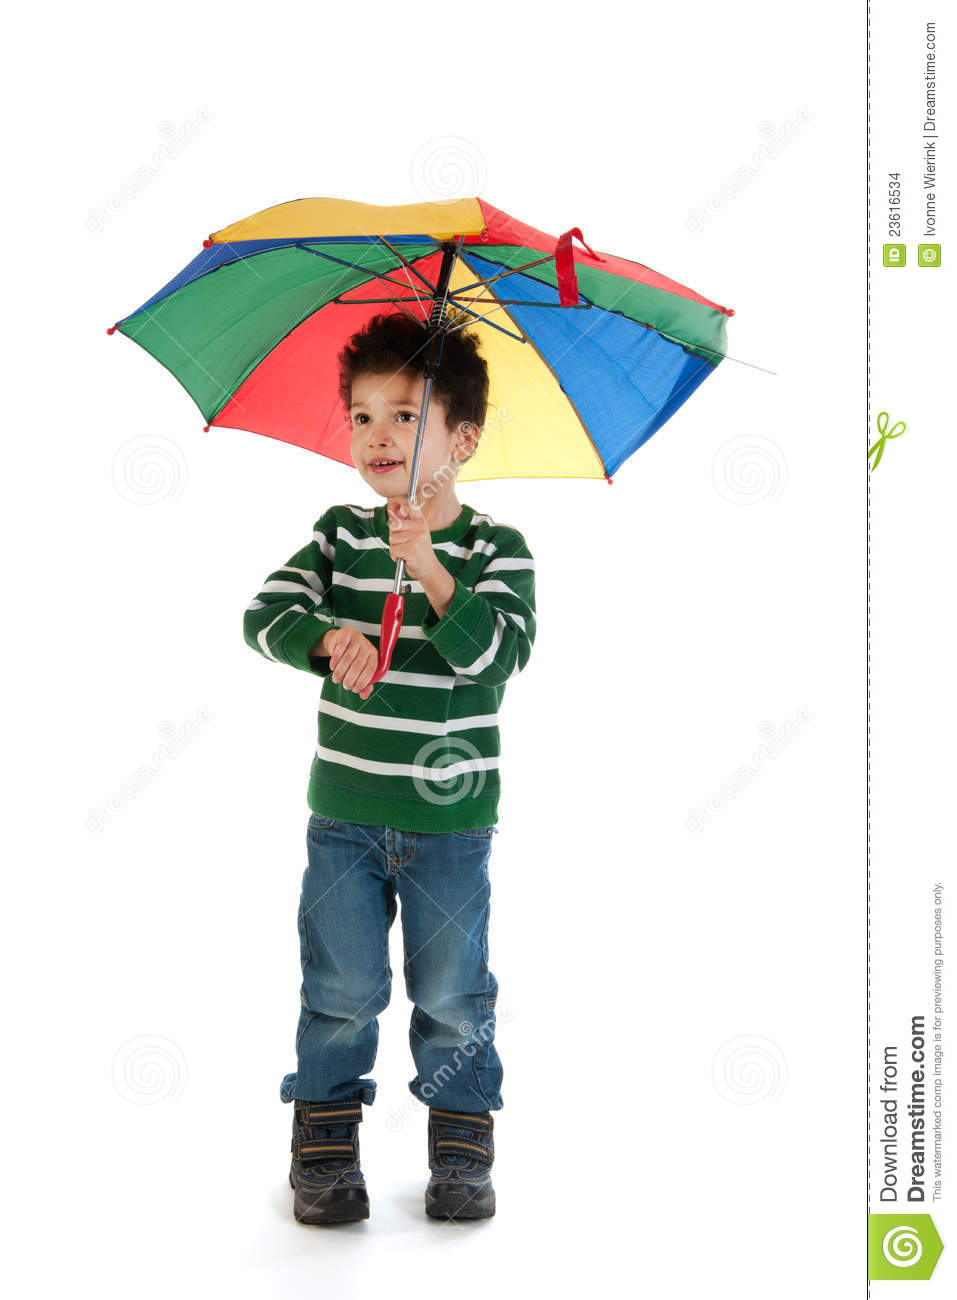 Child With Umbrella Stock Images - Image: 23616534